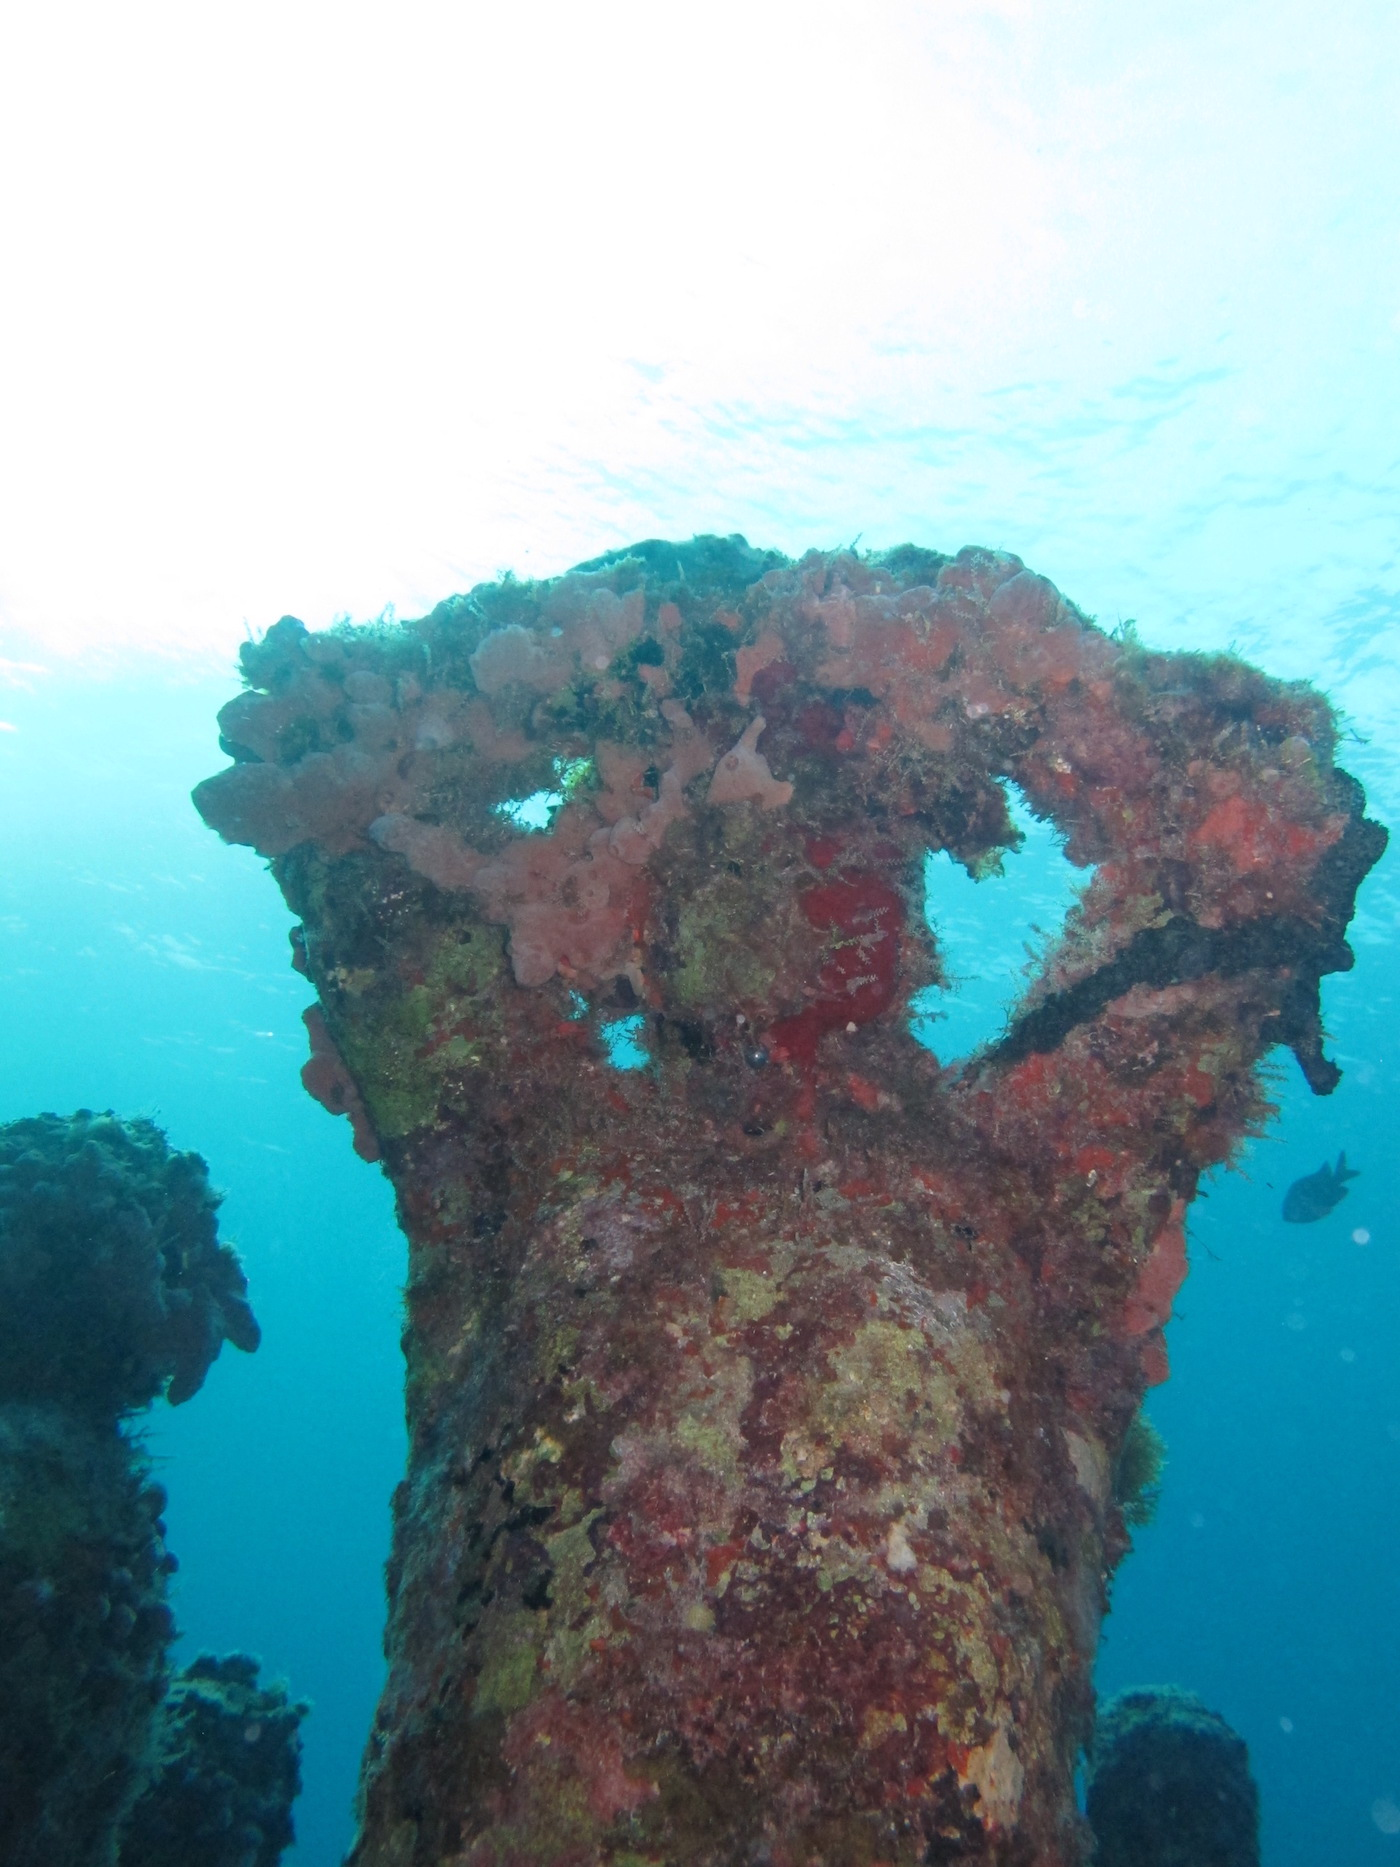 MUSA-Underwater-Museum-Snorkeling-Scuba-Diving-Tours-Isla-Mujeres-Carey-Dive-Center-9